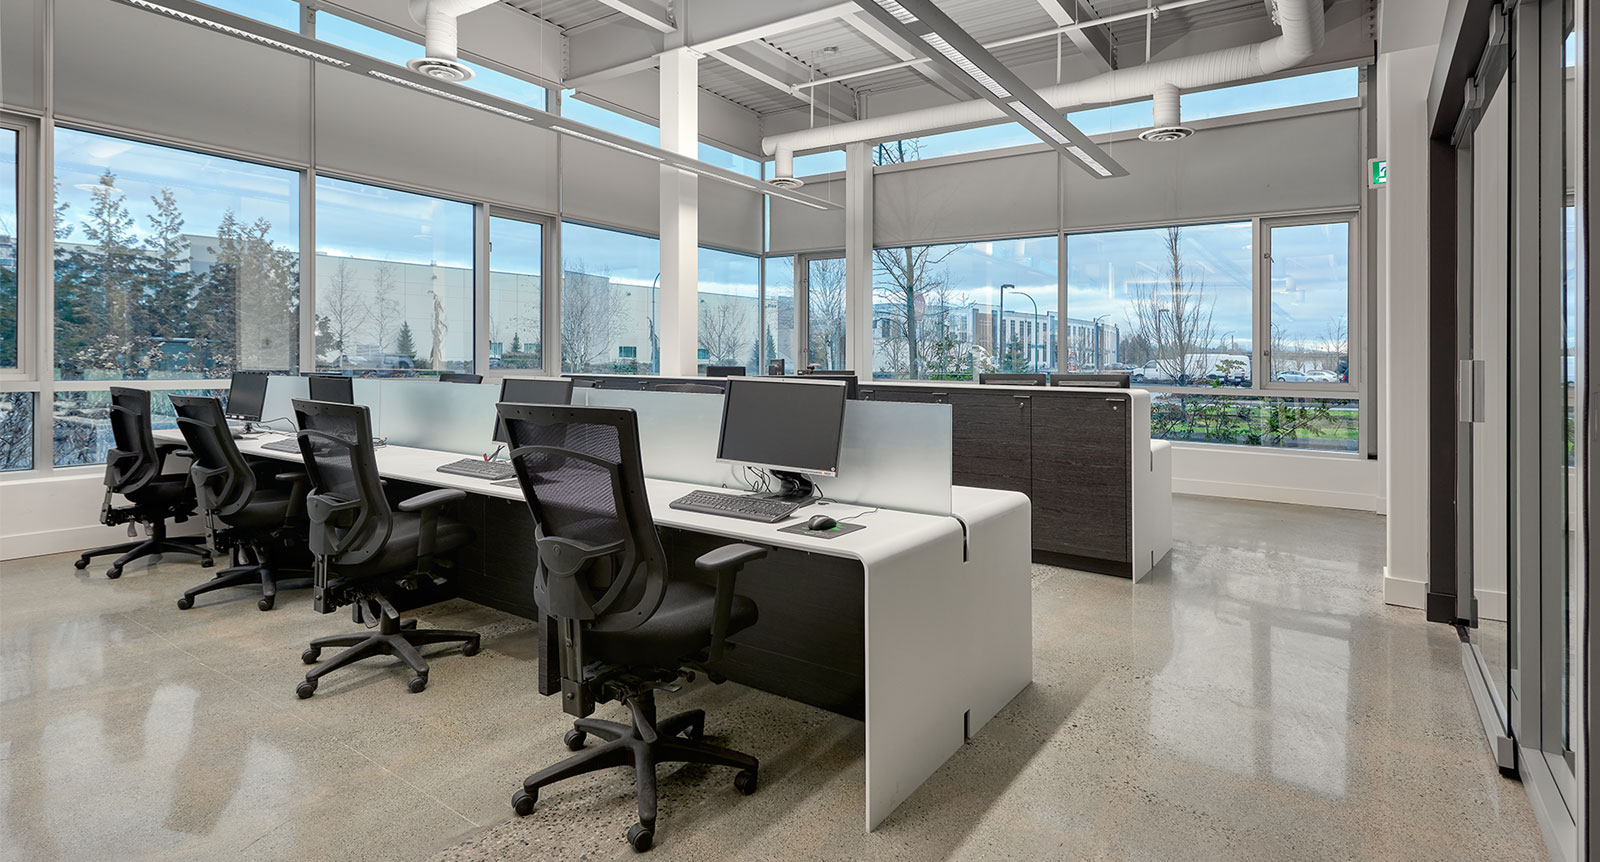 Upper Canada Vancouver Office Renovates Using Avonite, Polylac and Element Veneer